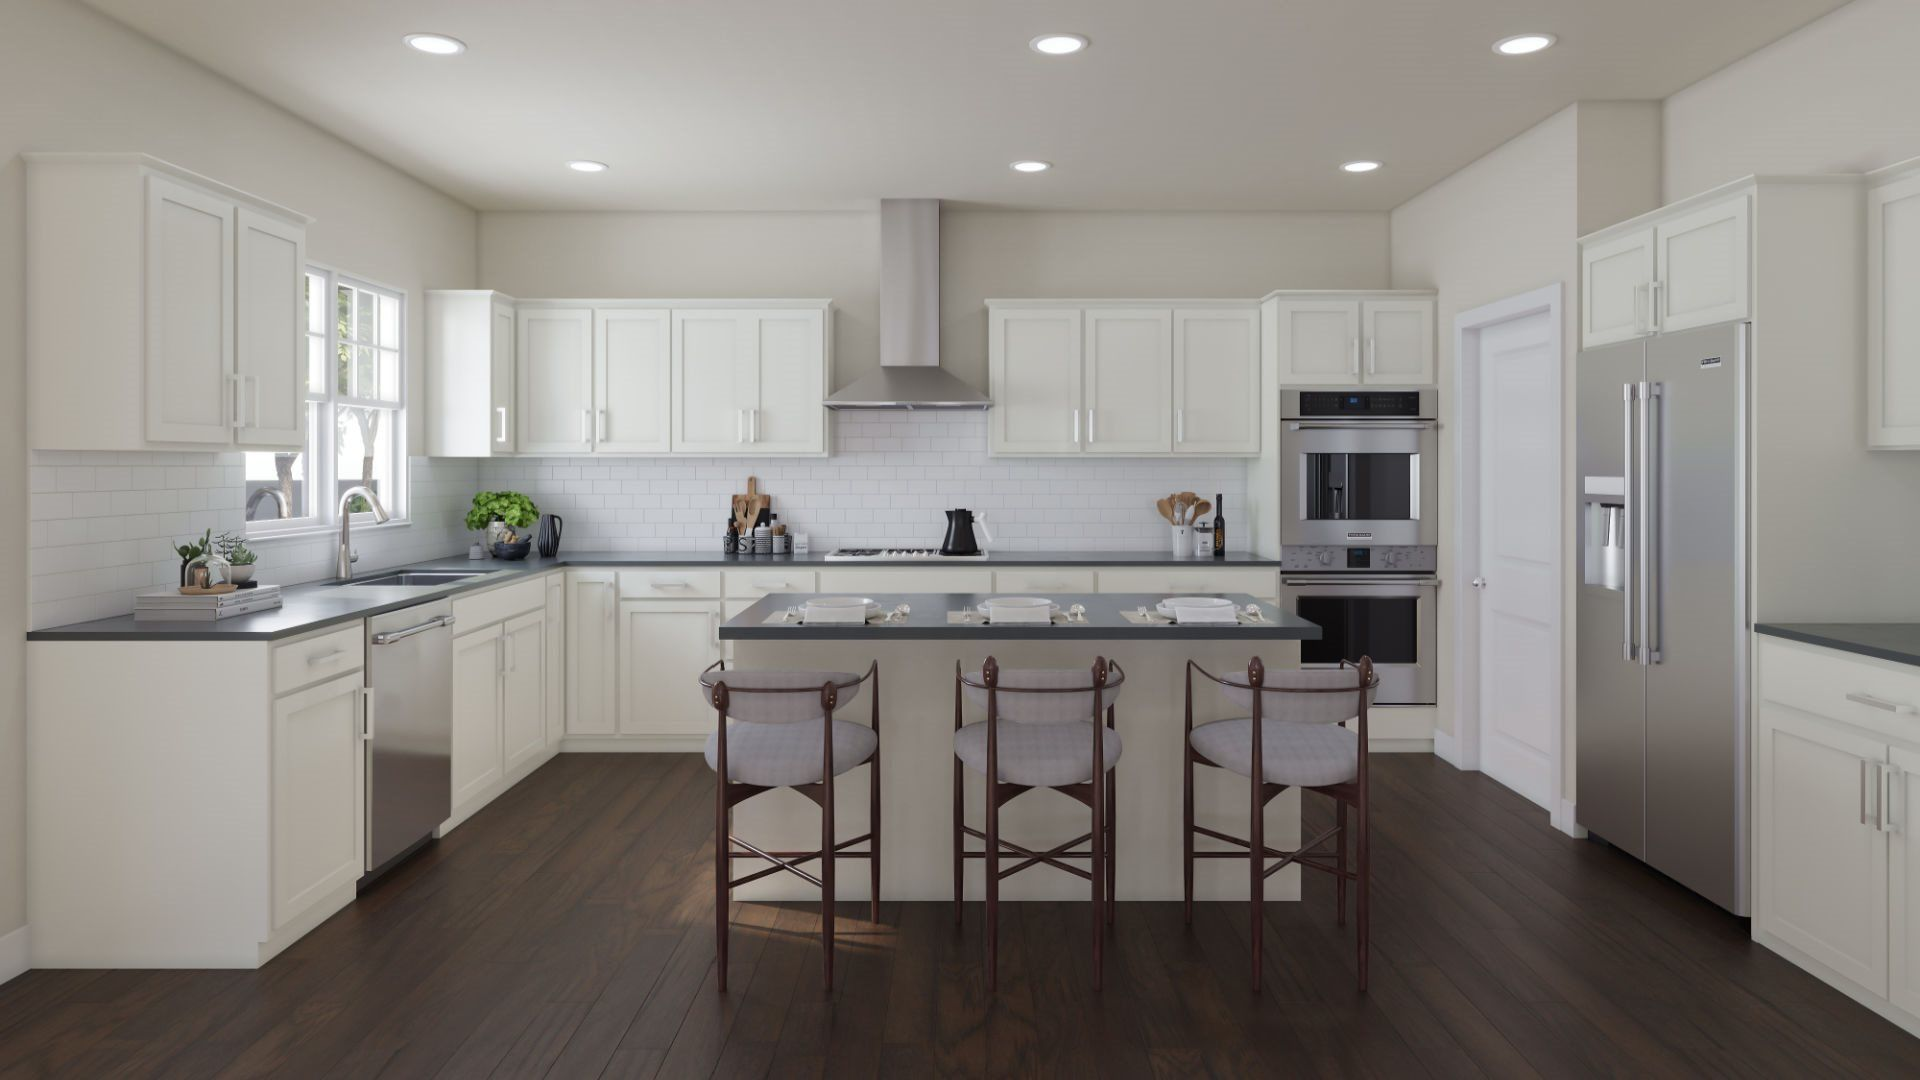 'Magnolia Reserve' by Lennar - Philly Metro in Philadelphia